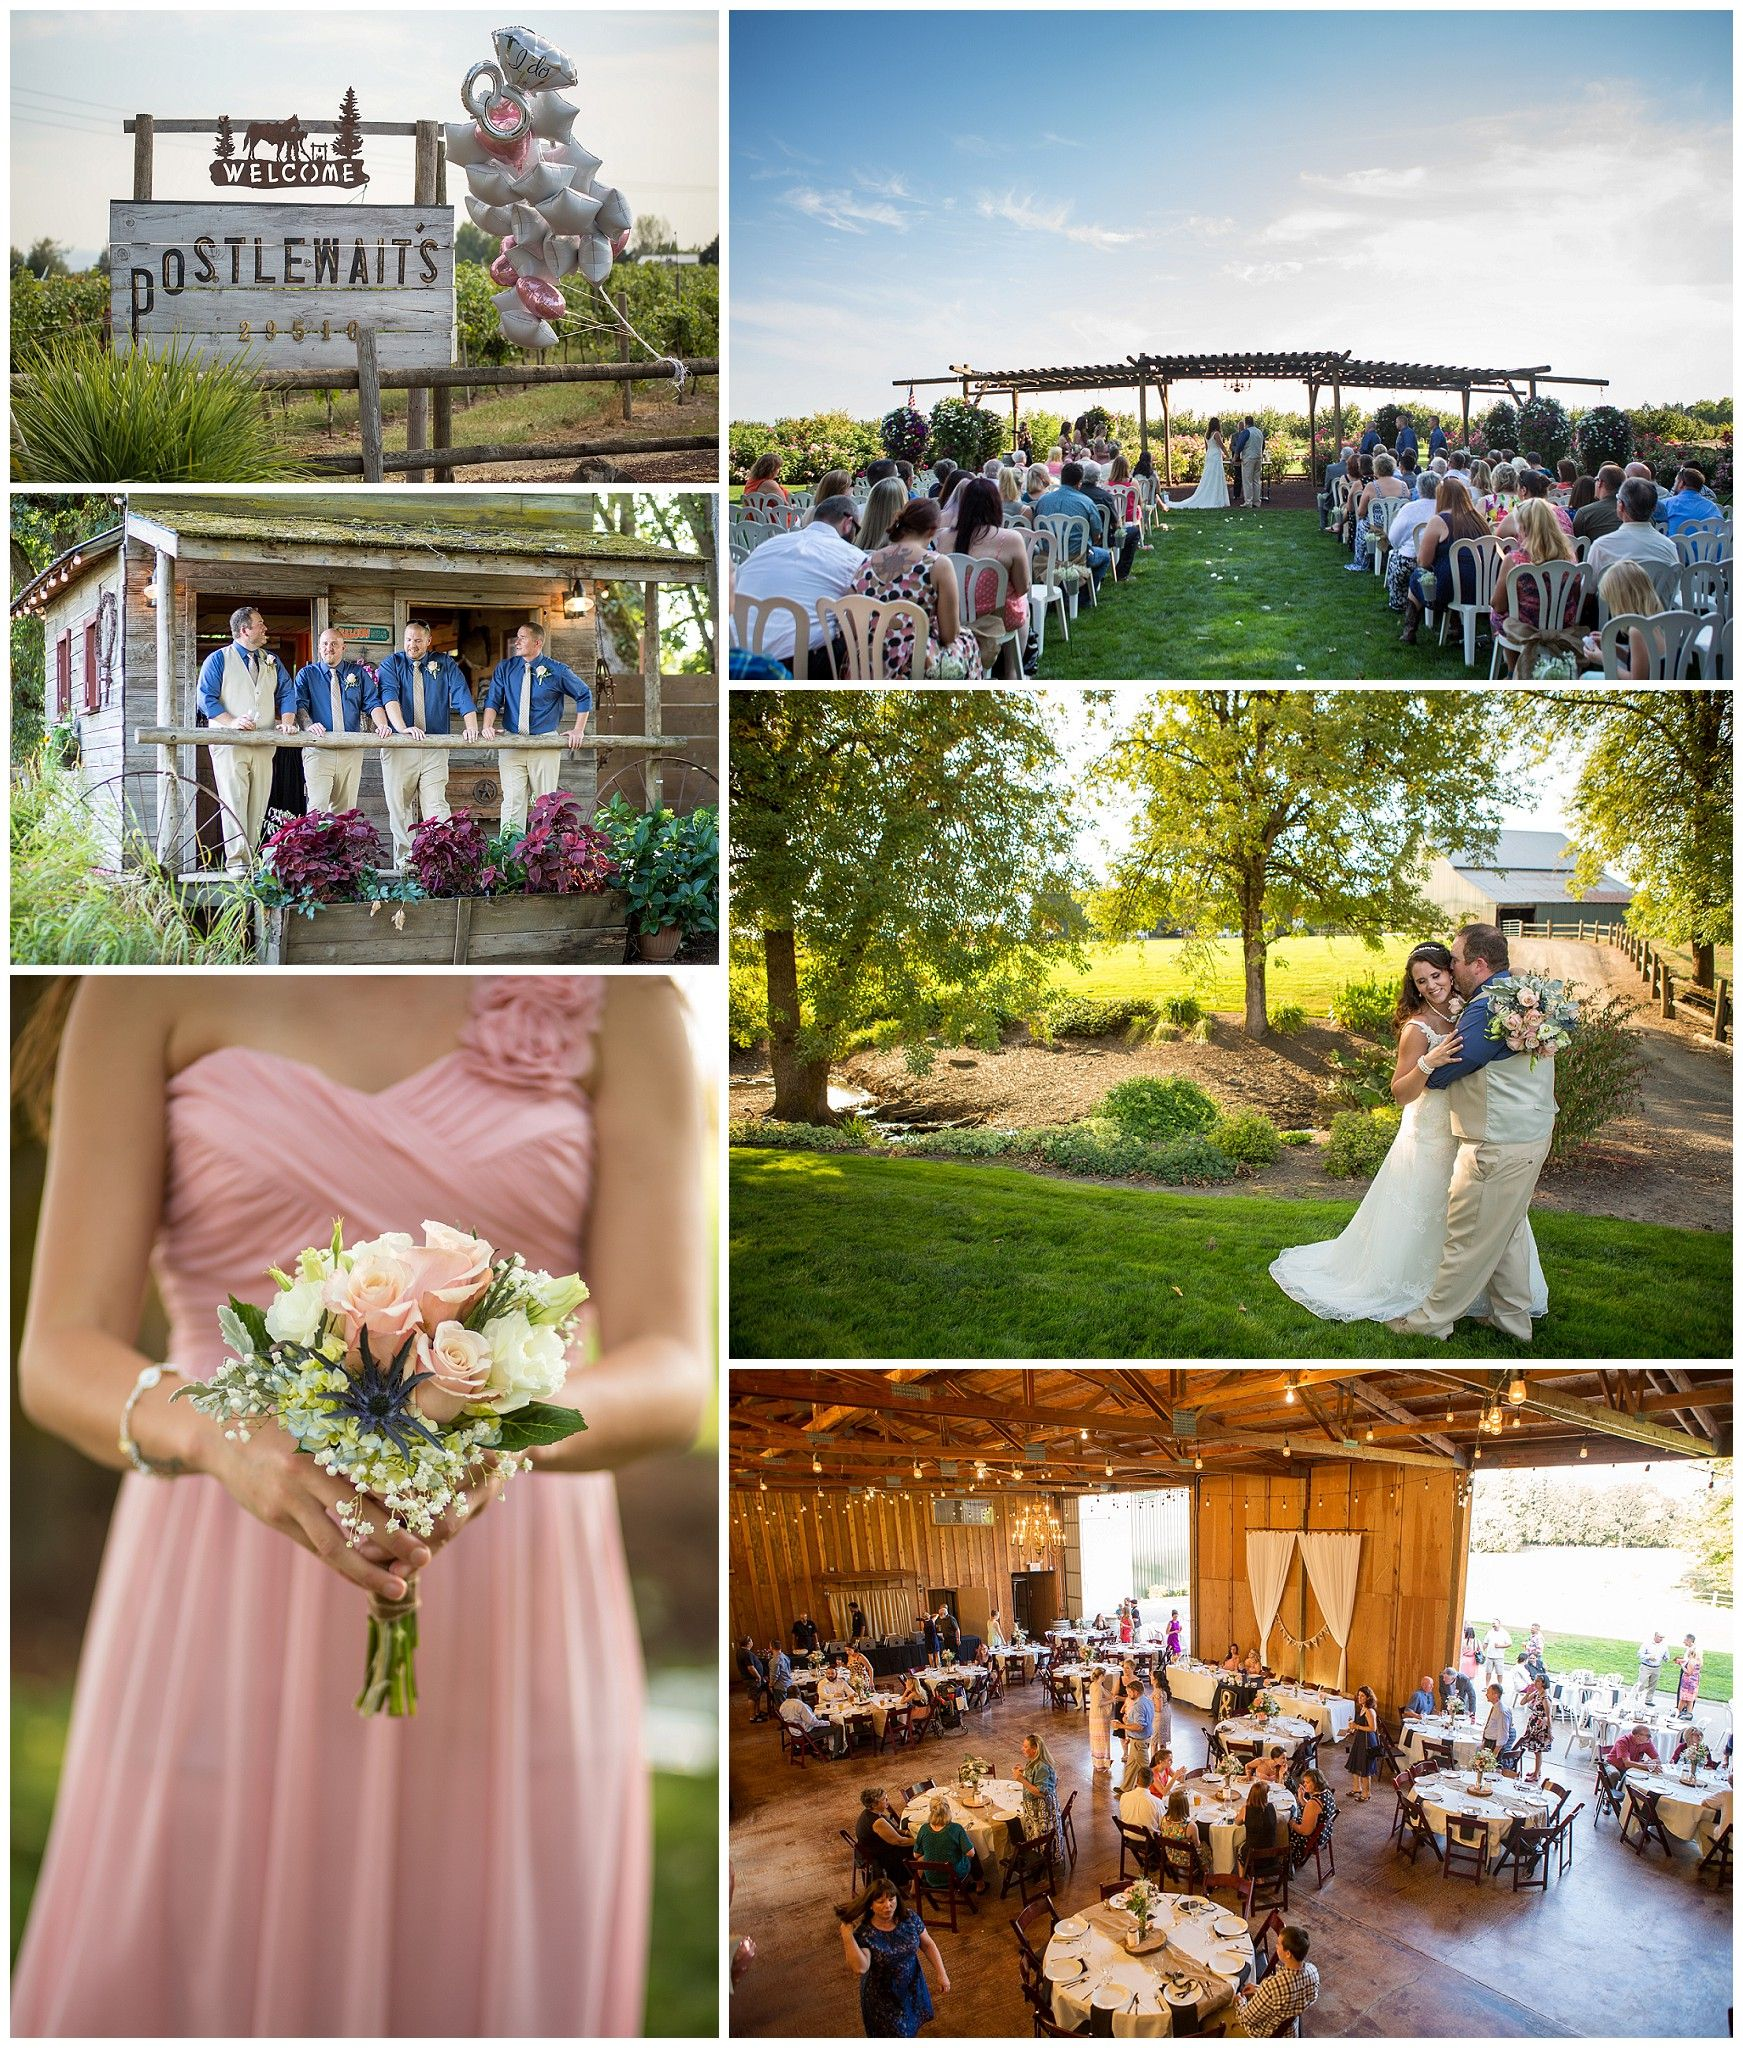 Country Wedding At Postlewaits In Canby Oregon